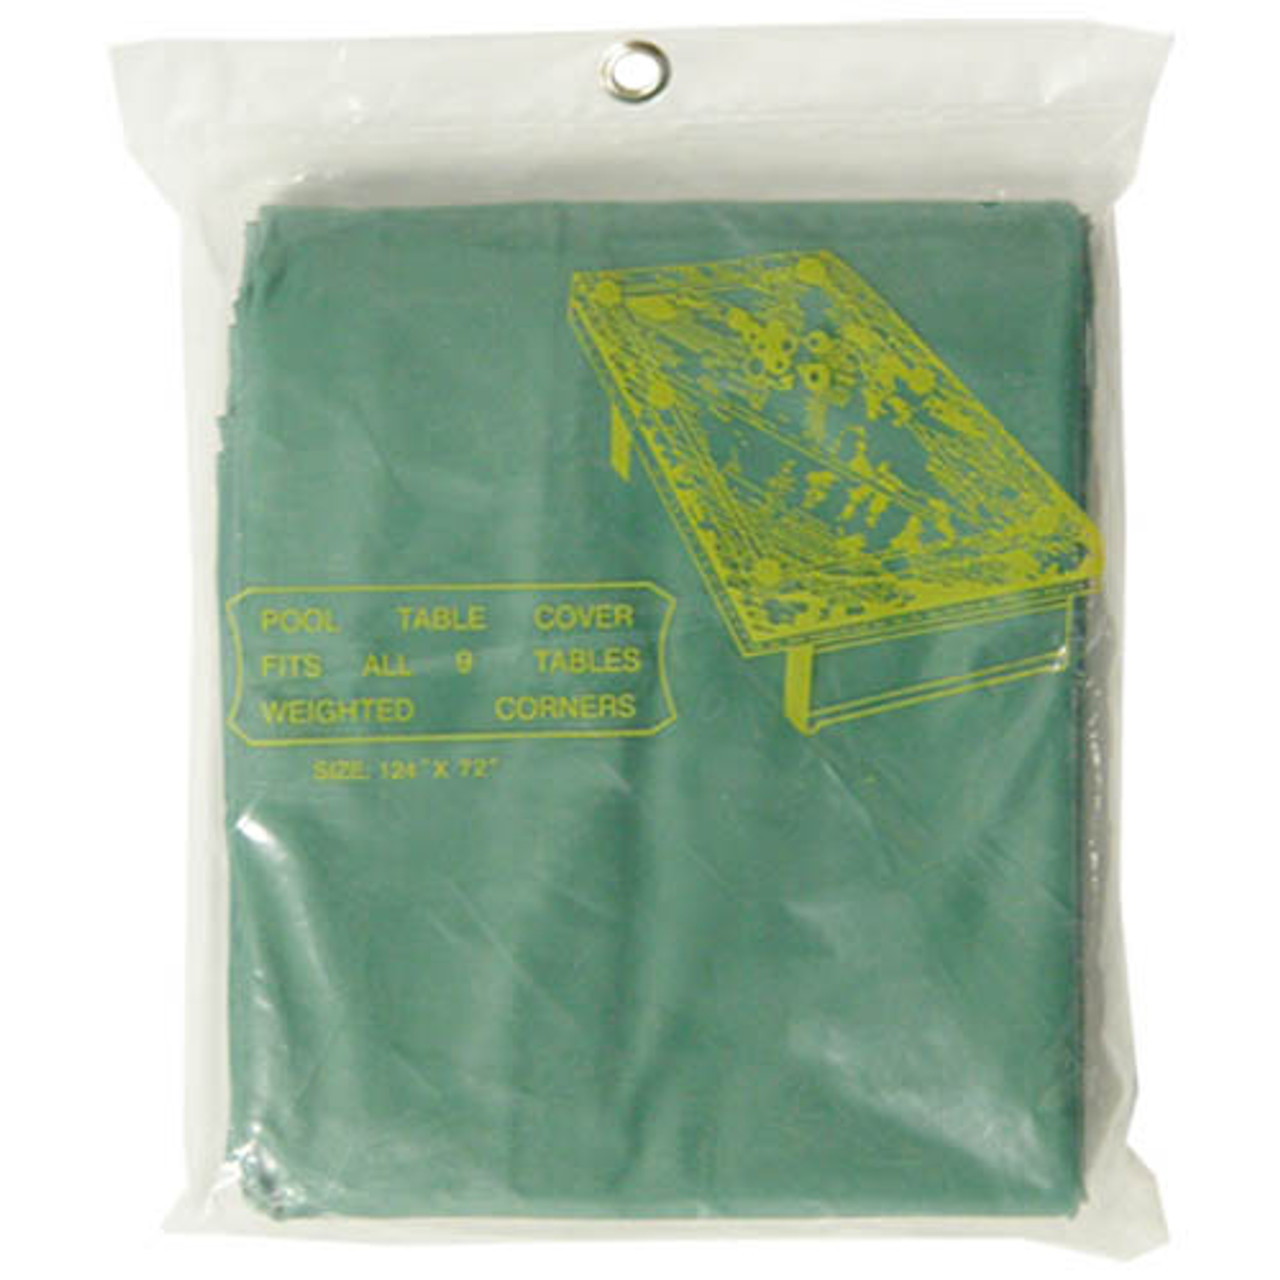 Standard Pool Table Cover, Green